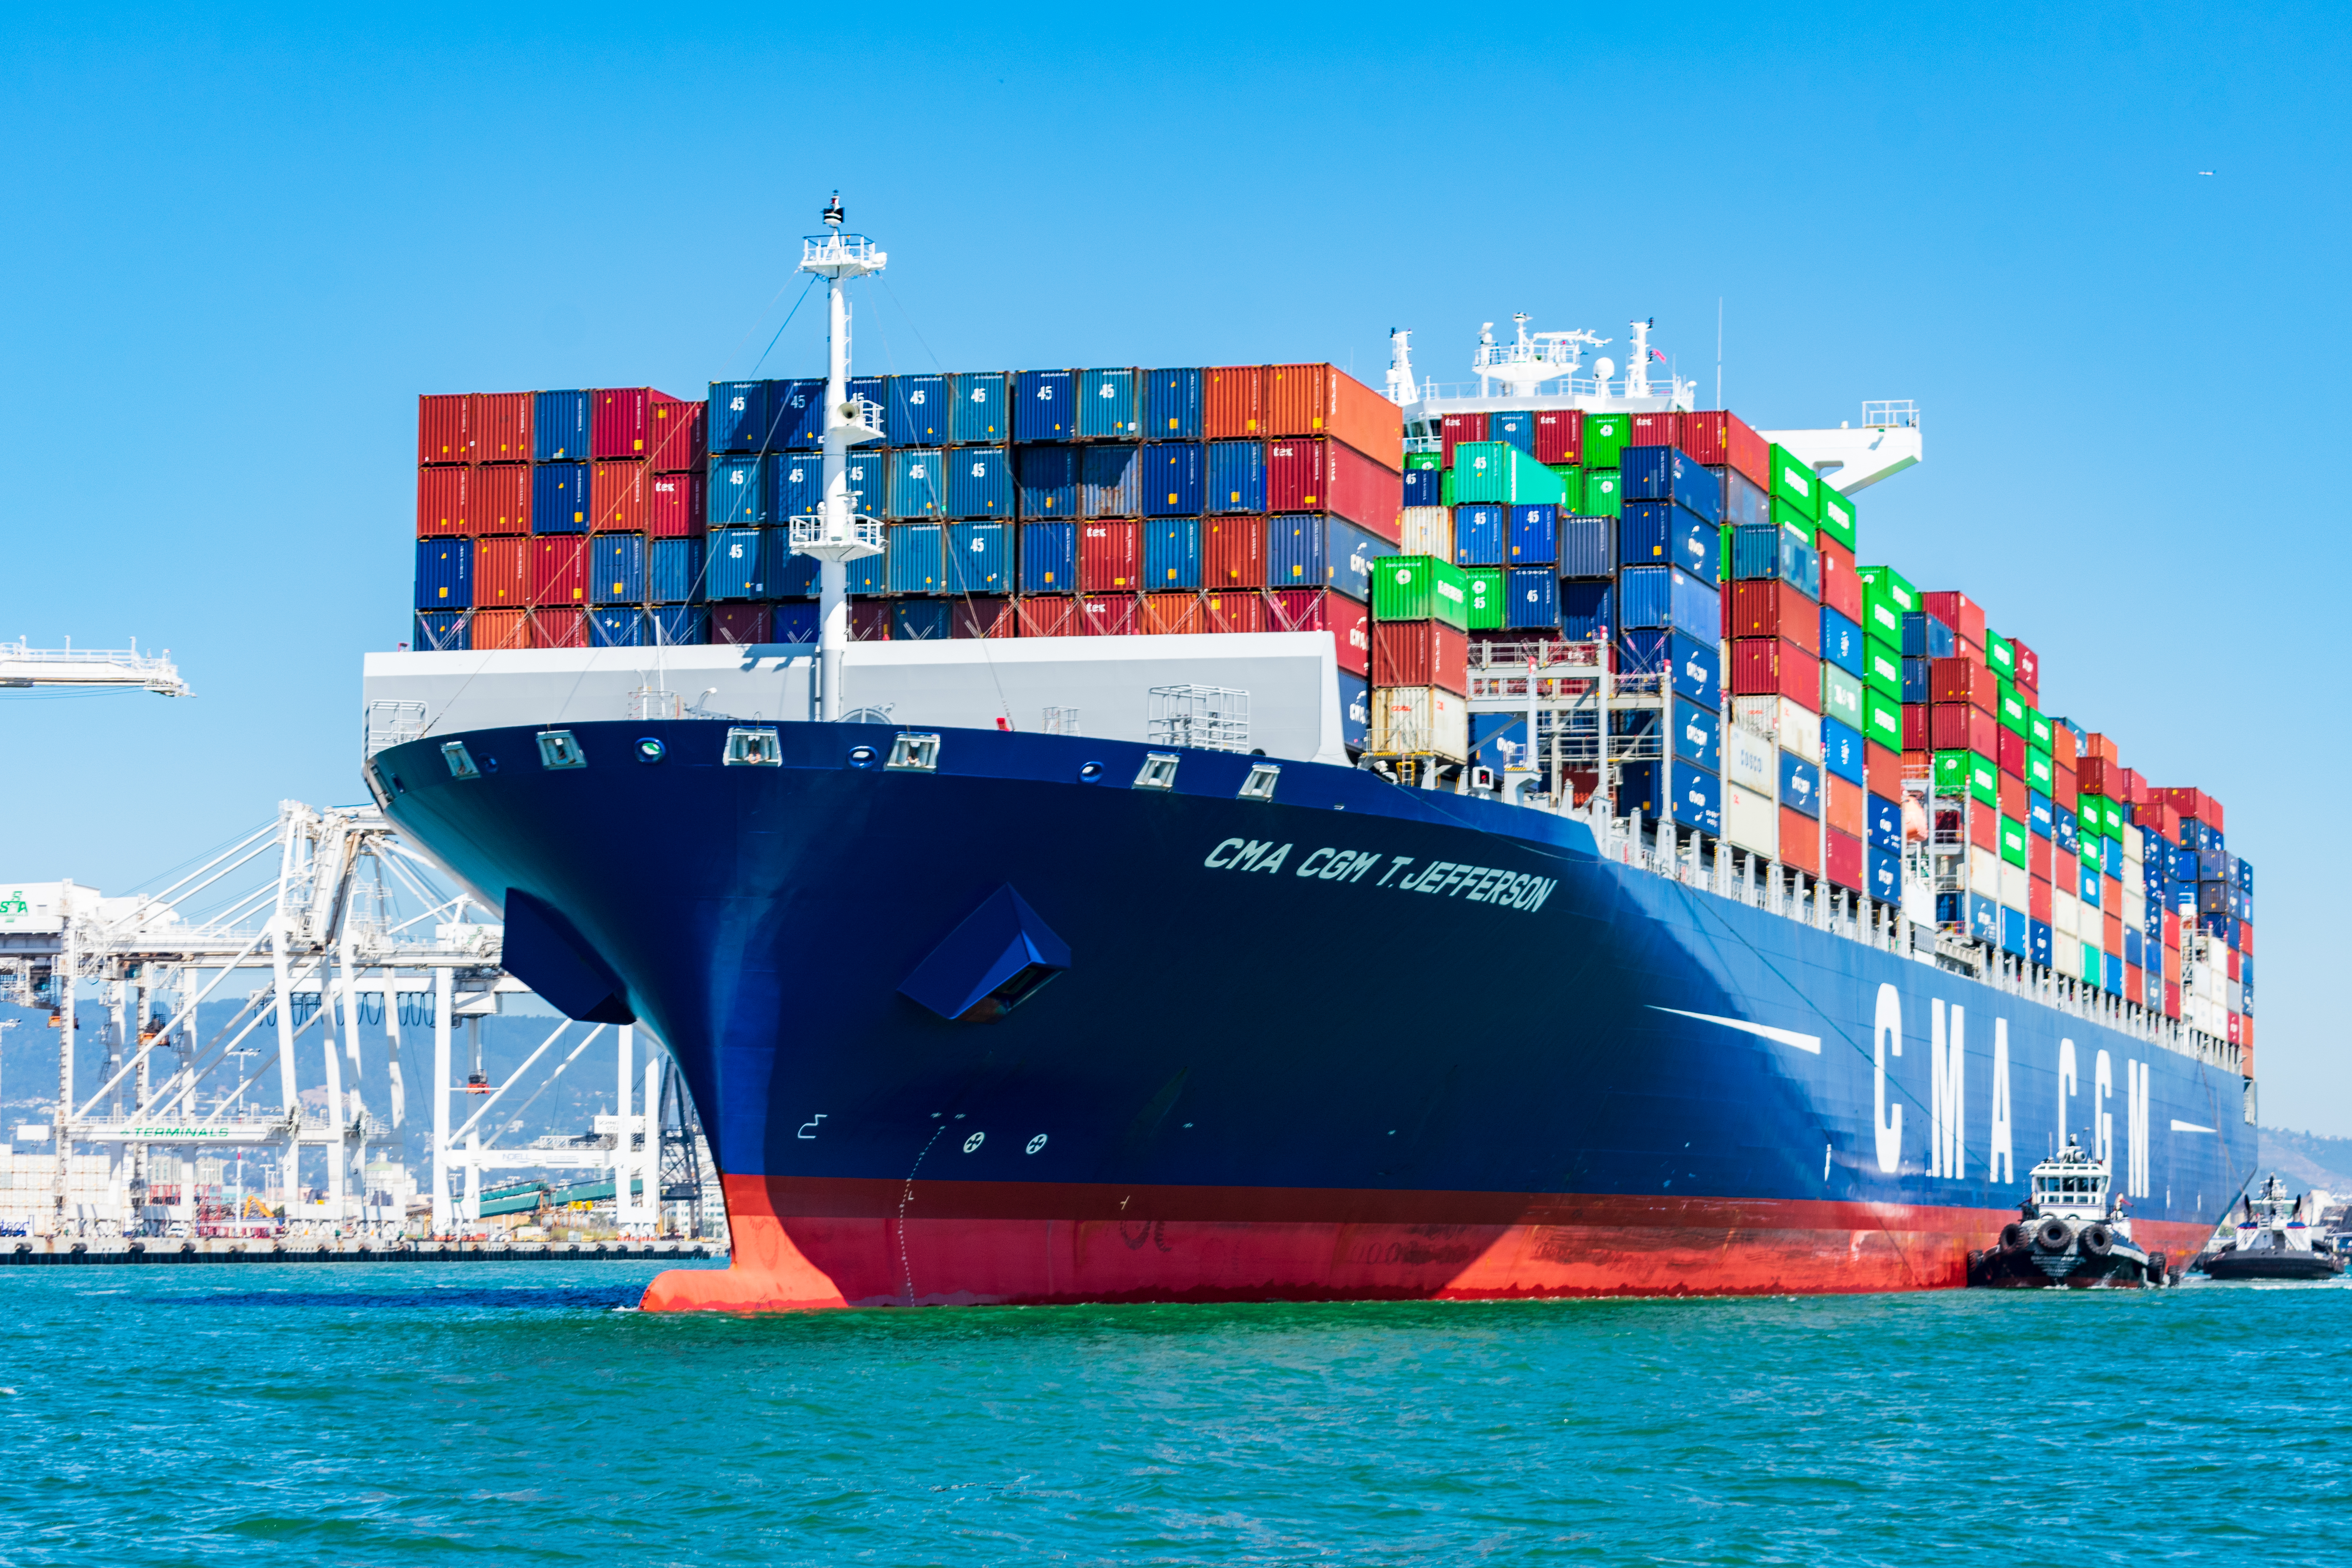 Oakland, California, USA - August 30, 2019 : Tugboats assist French container ship CMA CGM at the Port of Oakland under blue sky. A tugboat maneuvers vessel by pushing, pulling or towing containership